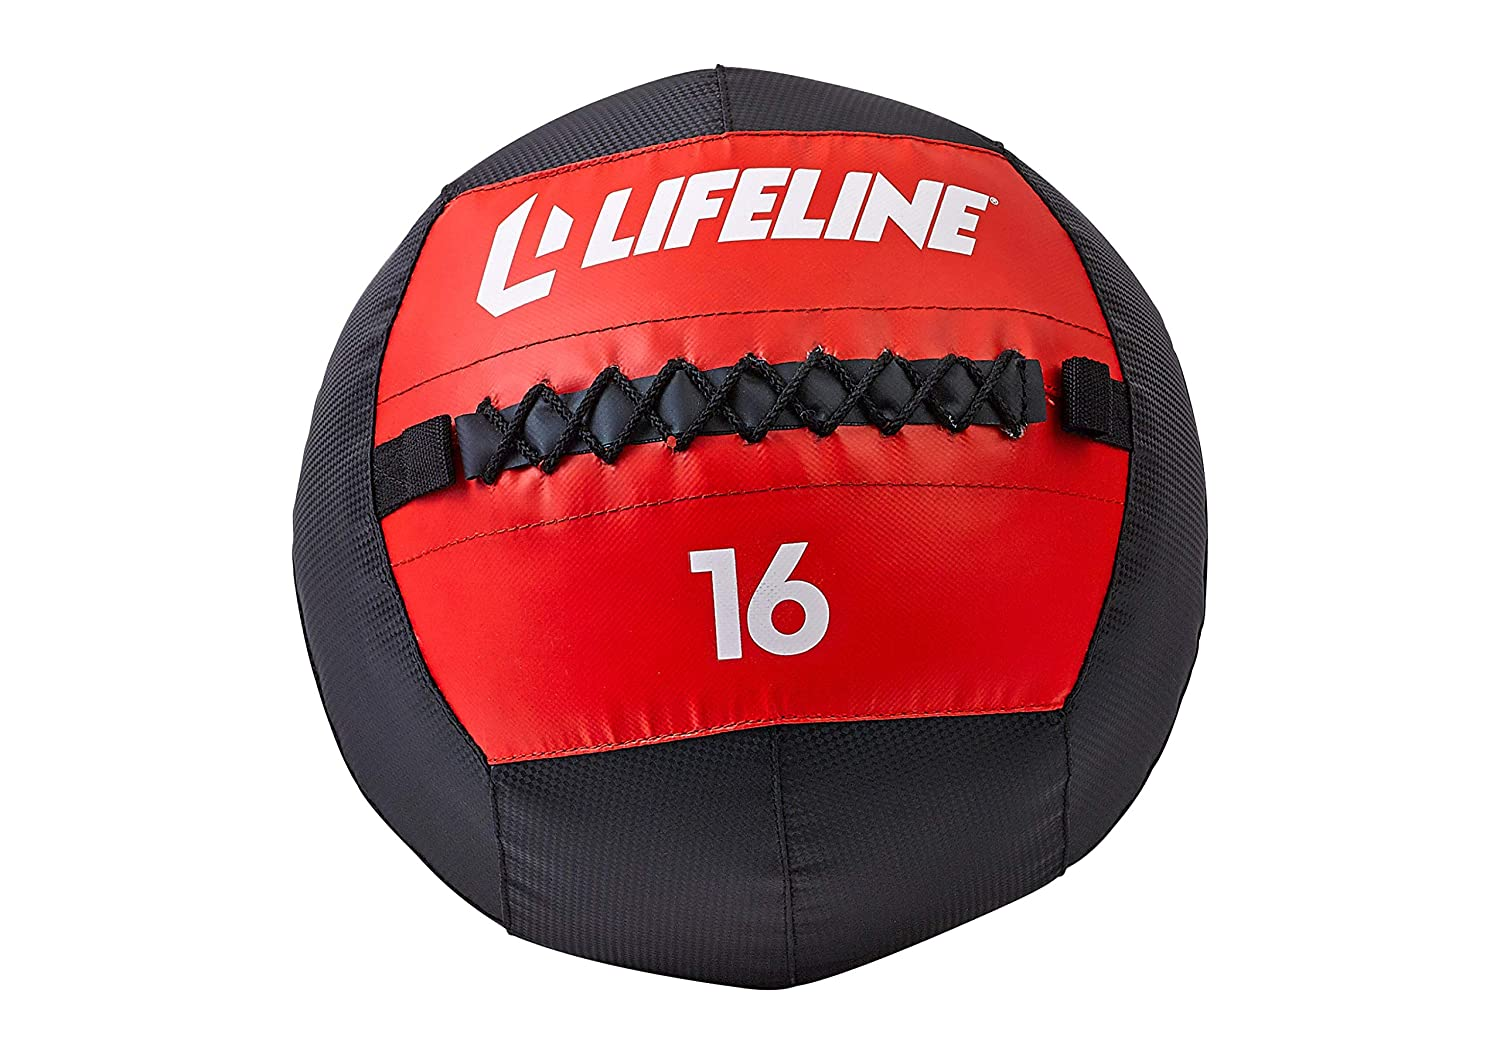 Lifeline Wall Ball for Improved Balance, Coordination and Stability – 10lbs.